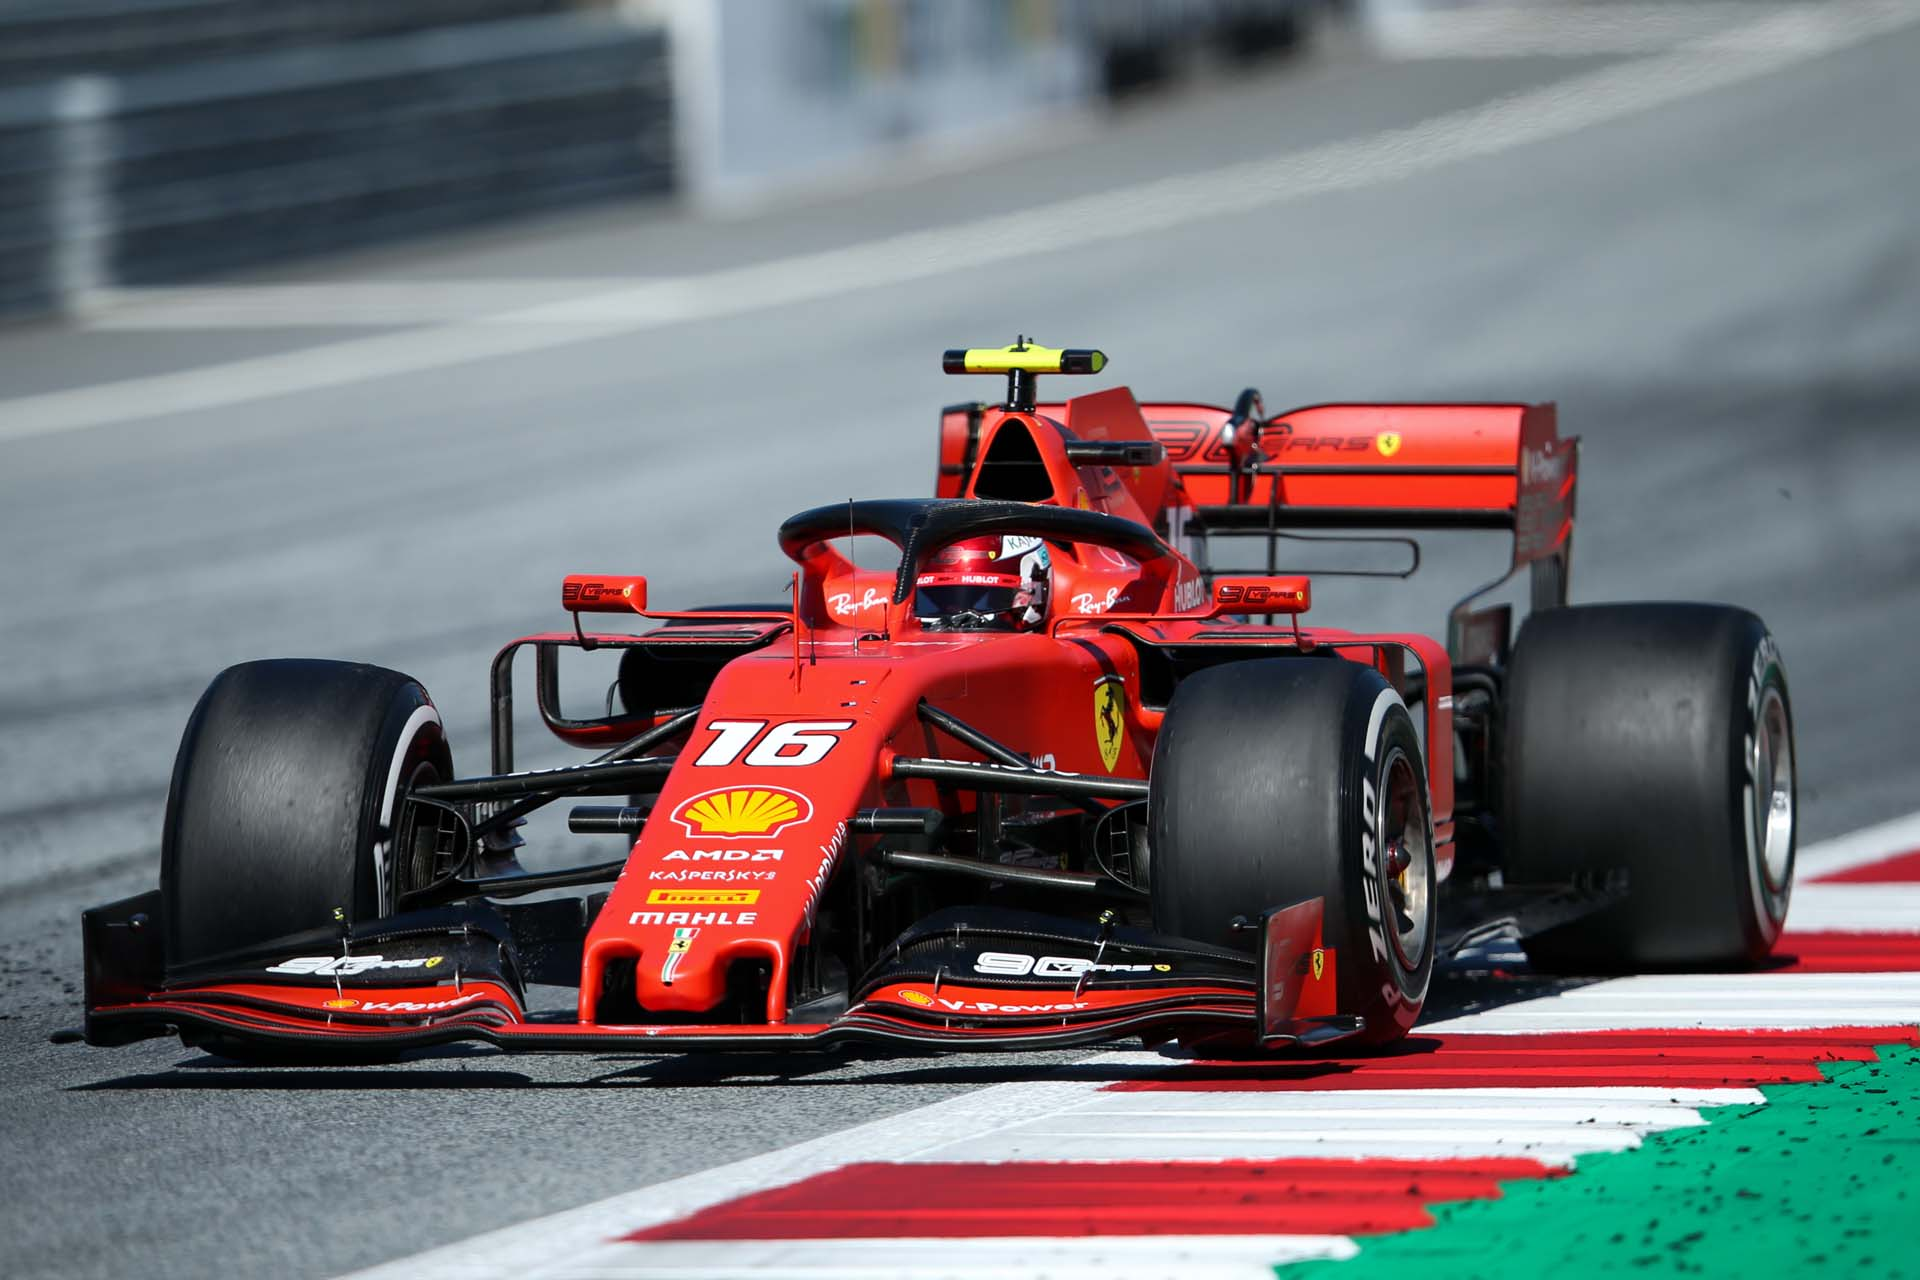 SPIELBERG,AUSTRIA,30.JUN.19 - MOTORSPORTS, FORMULA 1 - Grand Prix of Austria, Red Bull Ring. Image shows Charles Leclerc (MON/ Ferrari). Photo: GEPA pictures/ Harald Steiner - For editorial use only. Image is free of charge.